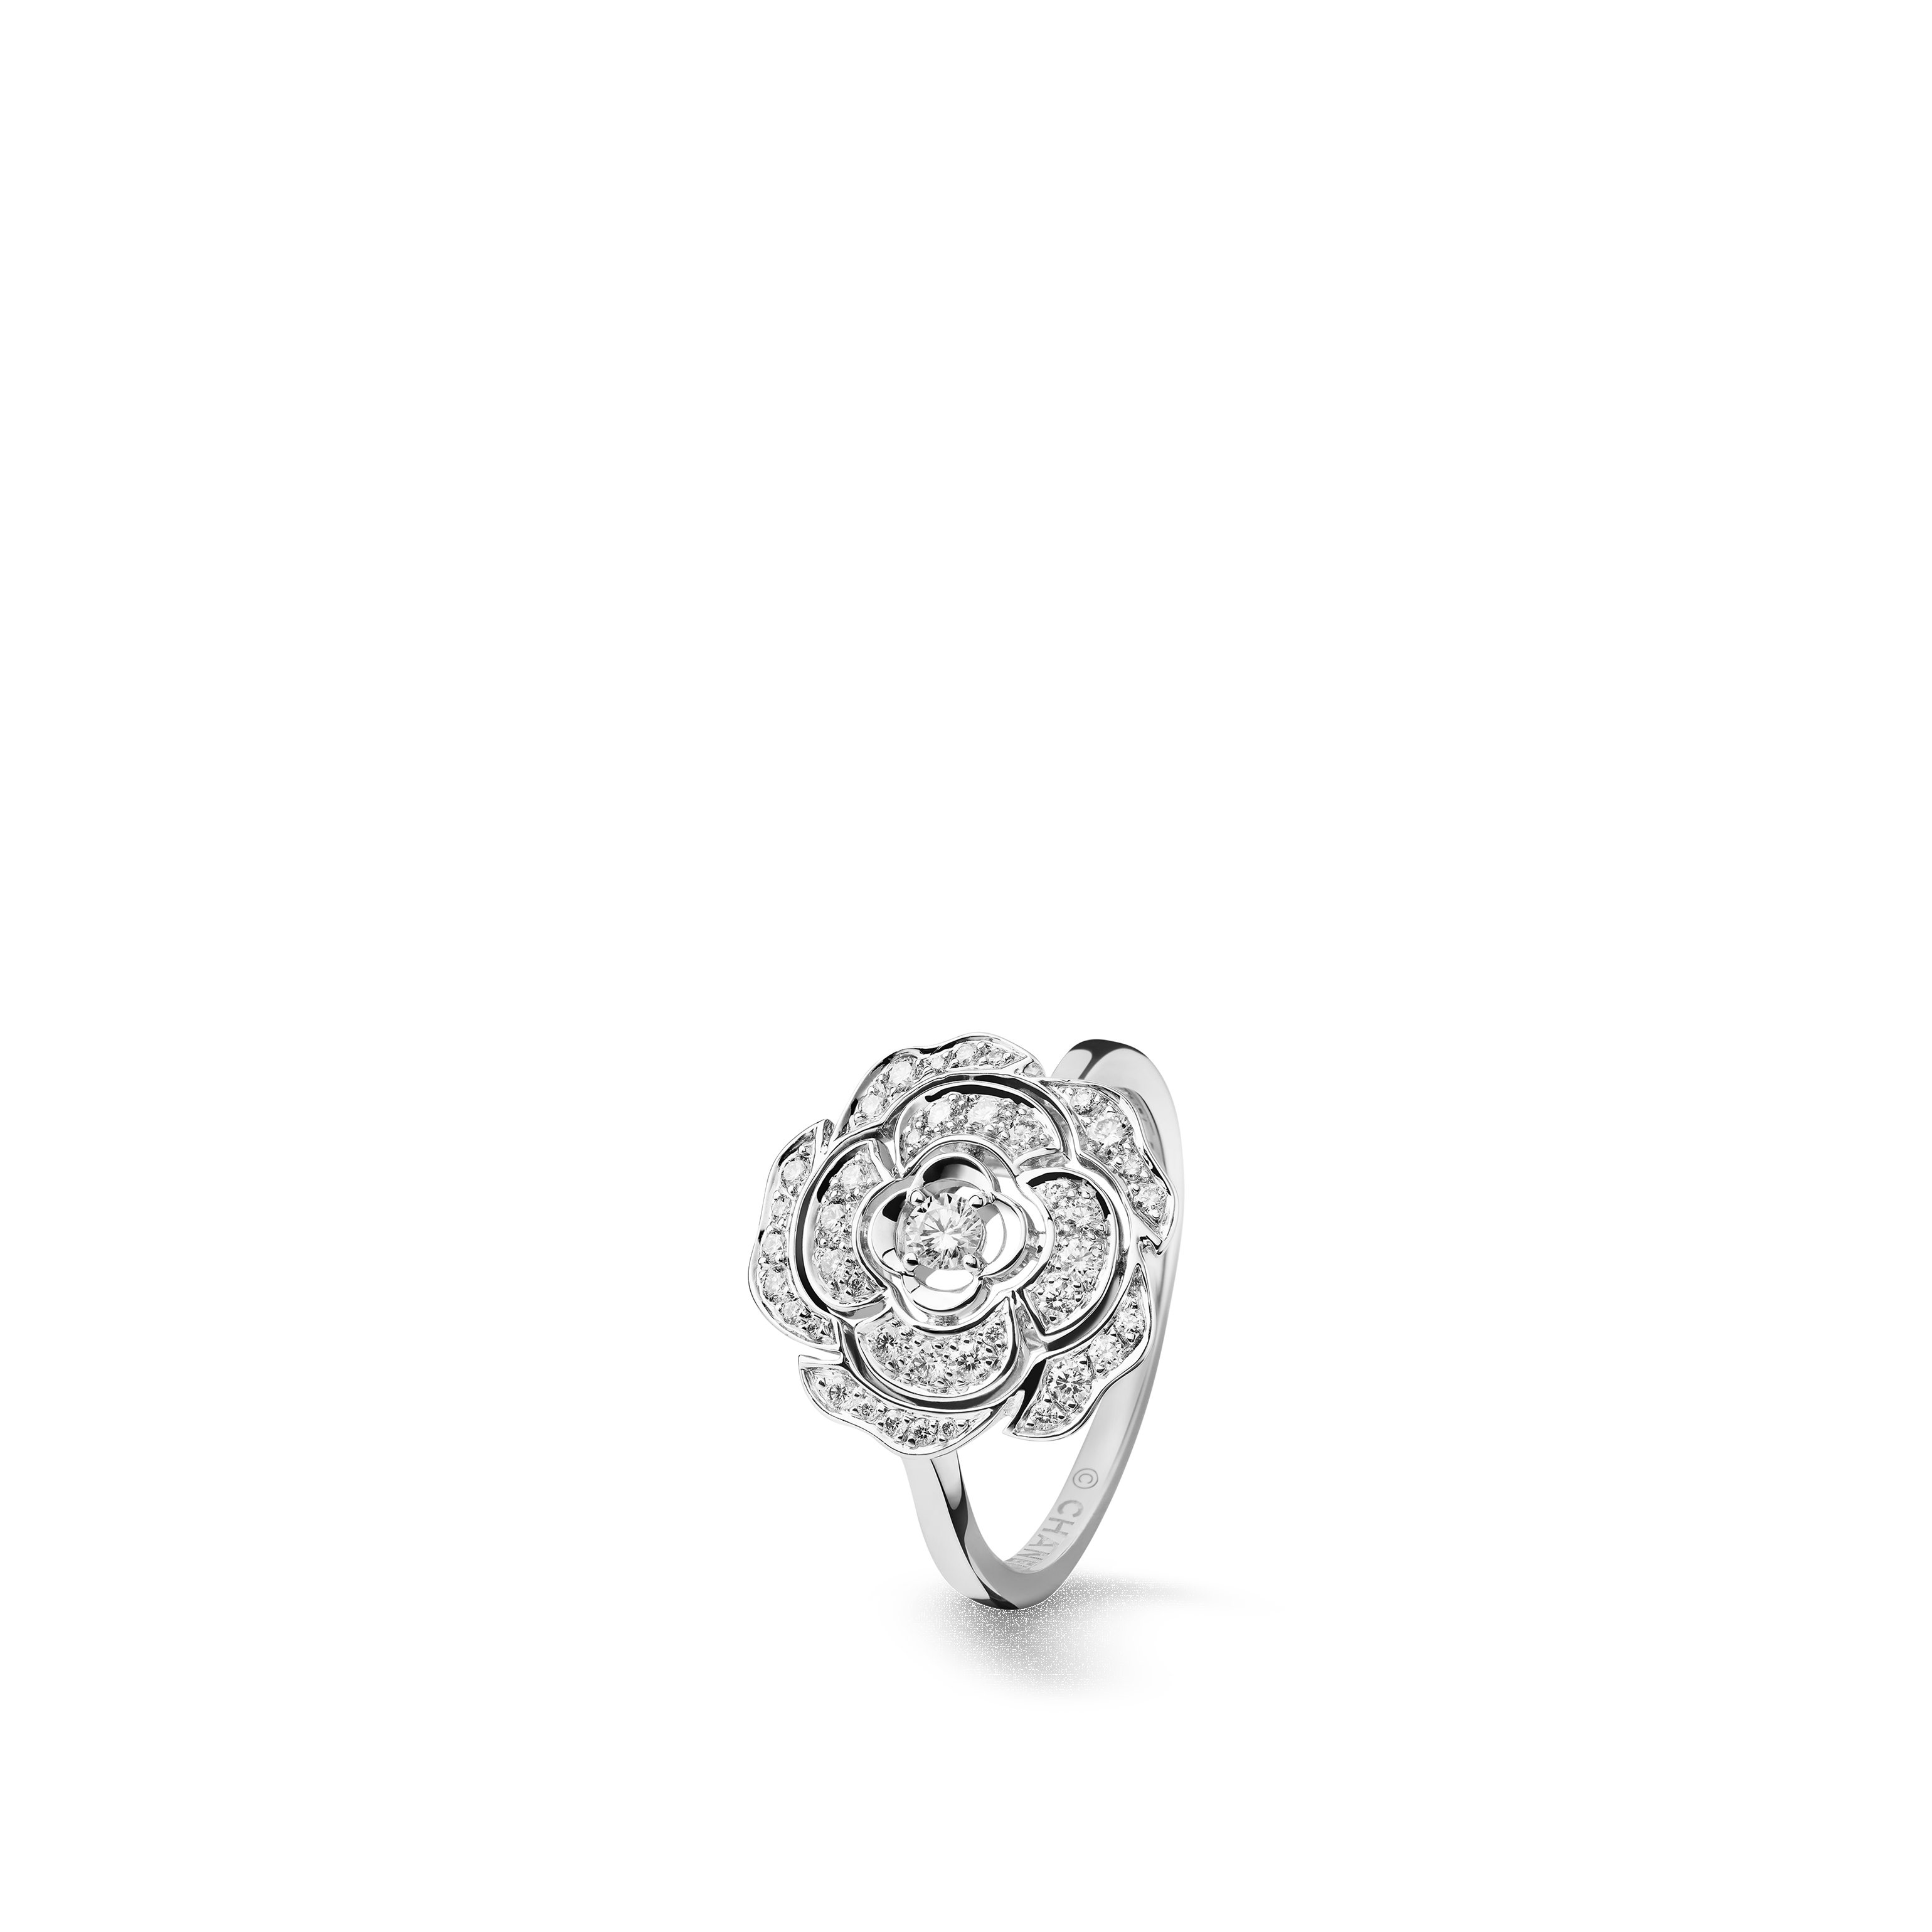 Bouton de Camélia ring - 18K white gold, diamonds - CHANEL - Default view - see standard sized version